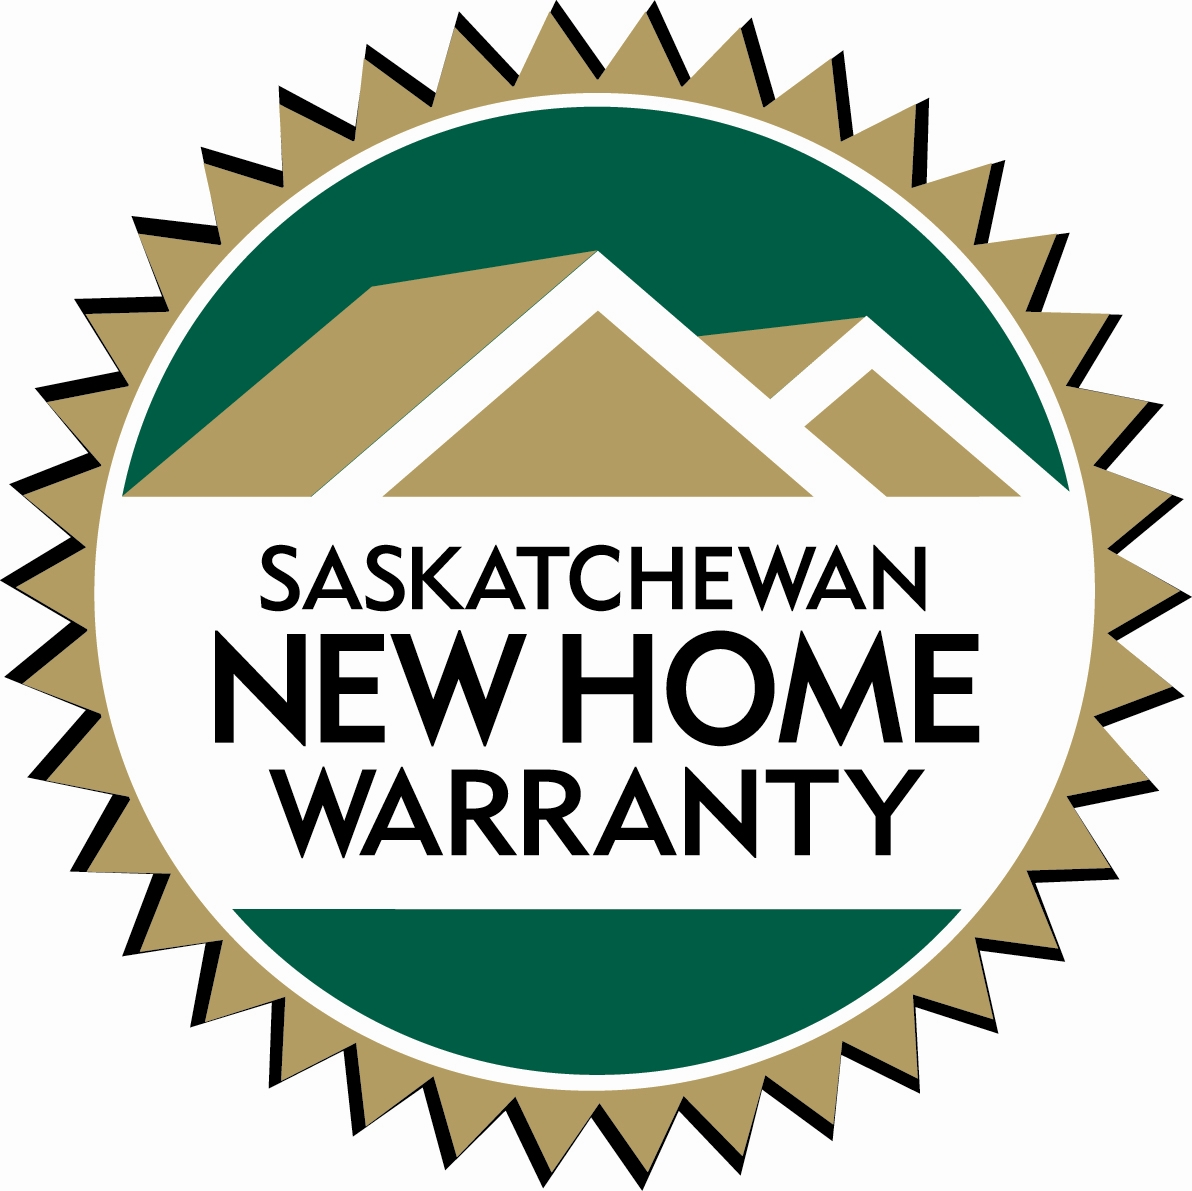 Saskatchewan New Homes Warranty